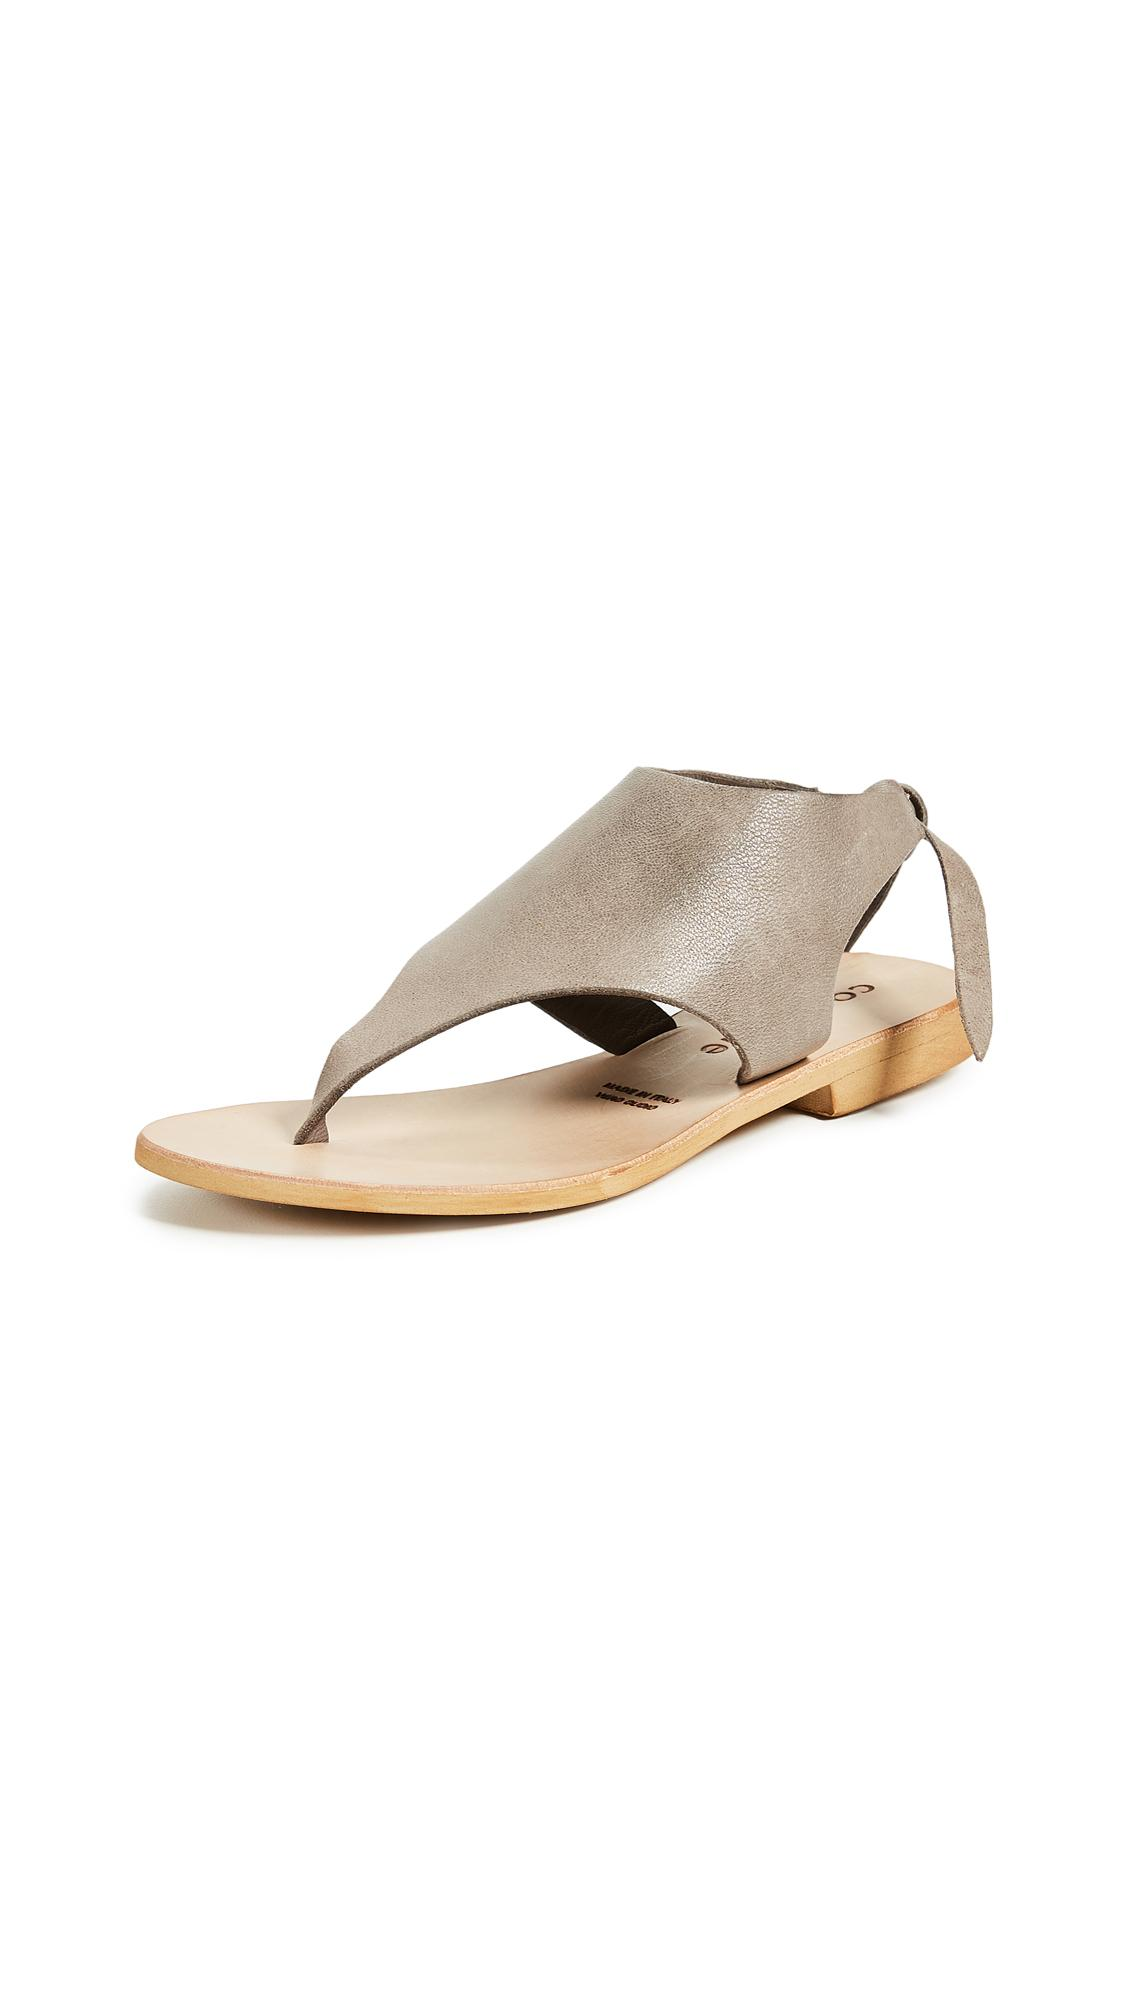 d1f2c33a3429 Cocobelle Tye Sandals In Gray